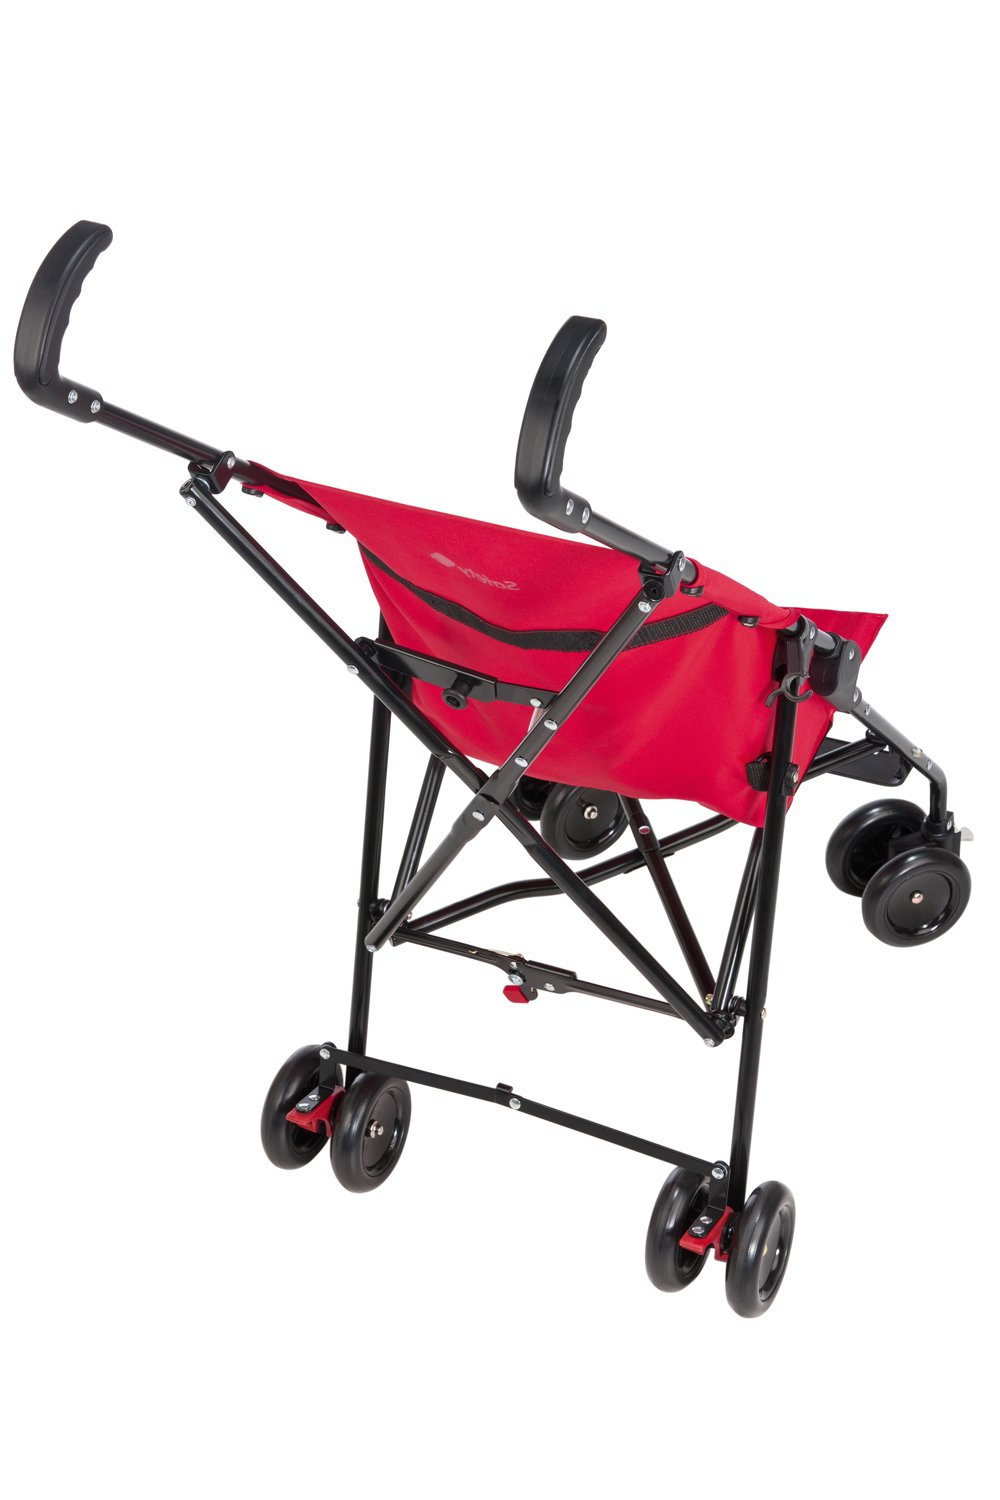 Safety 1st Peps Lightweight Buggy, Plain Red  Lightweight, only weighing 4.5kg so it's easy to carry Suspension on front wheels for a smooth ride Highly manoeuvrable with the swivelling front wheels 3